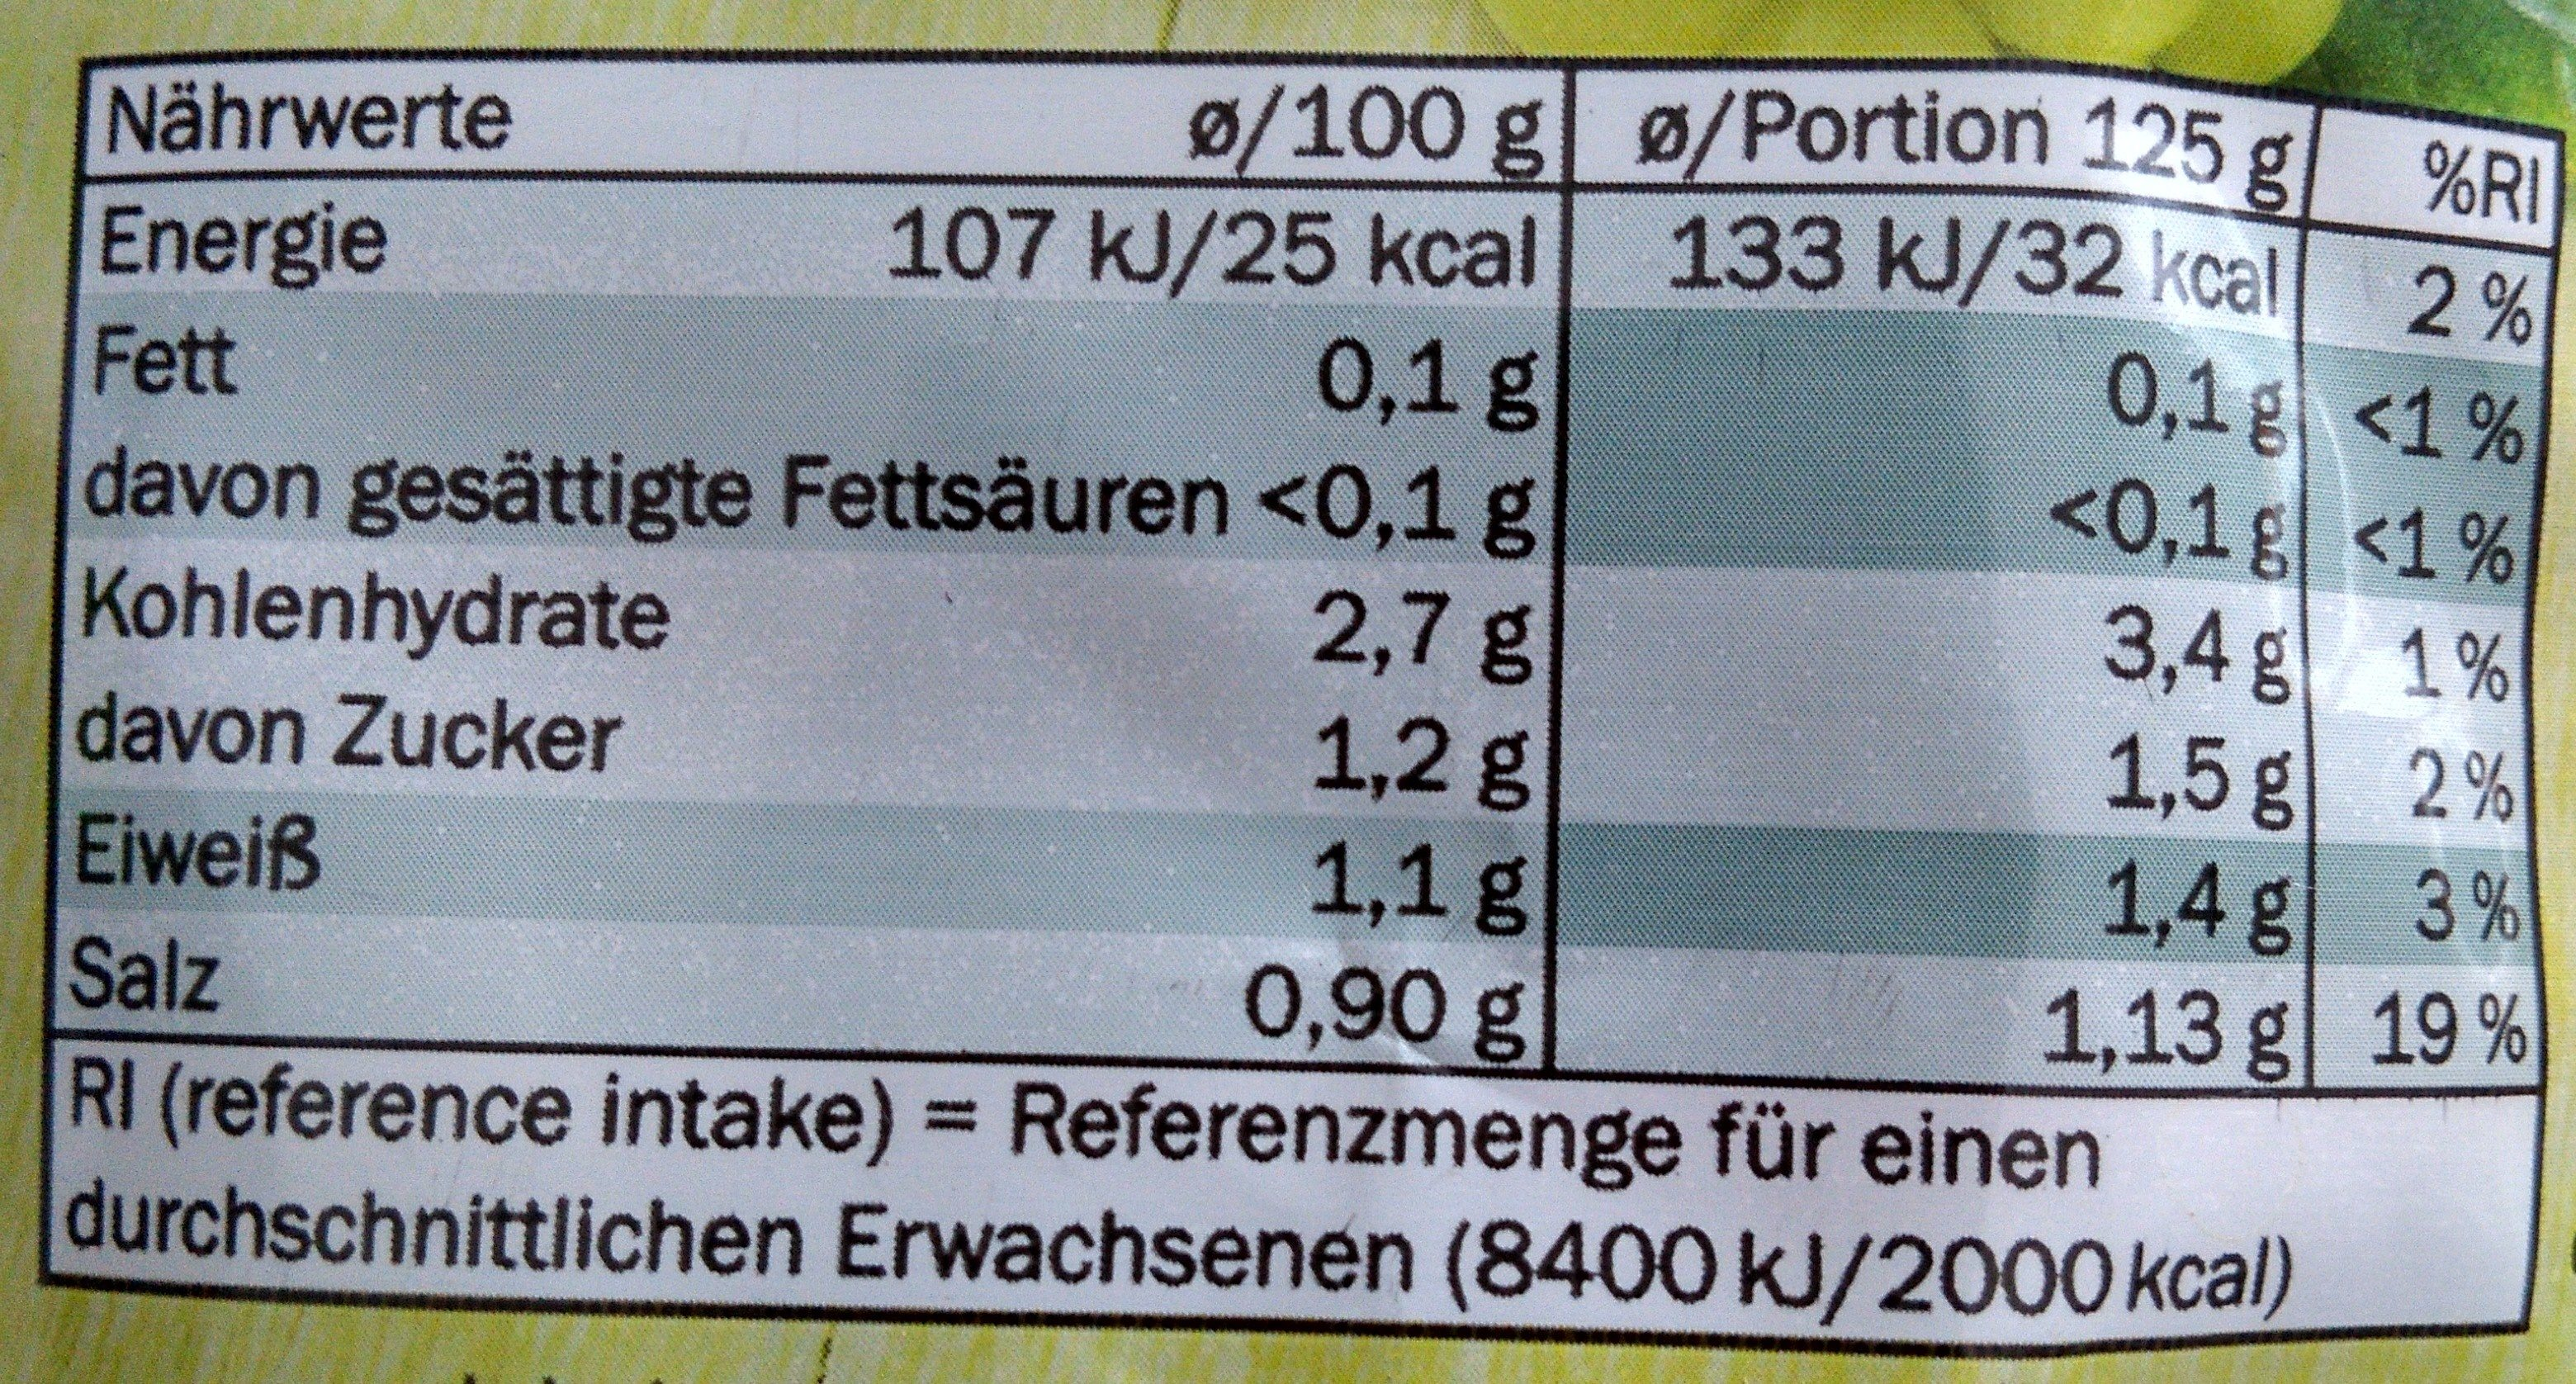 Freshona Wein sauerkraut - Nutrition facts